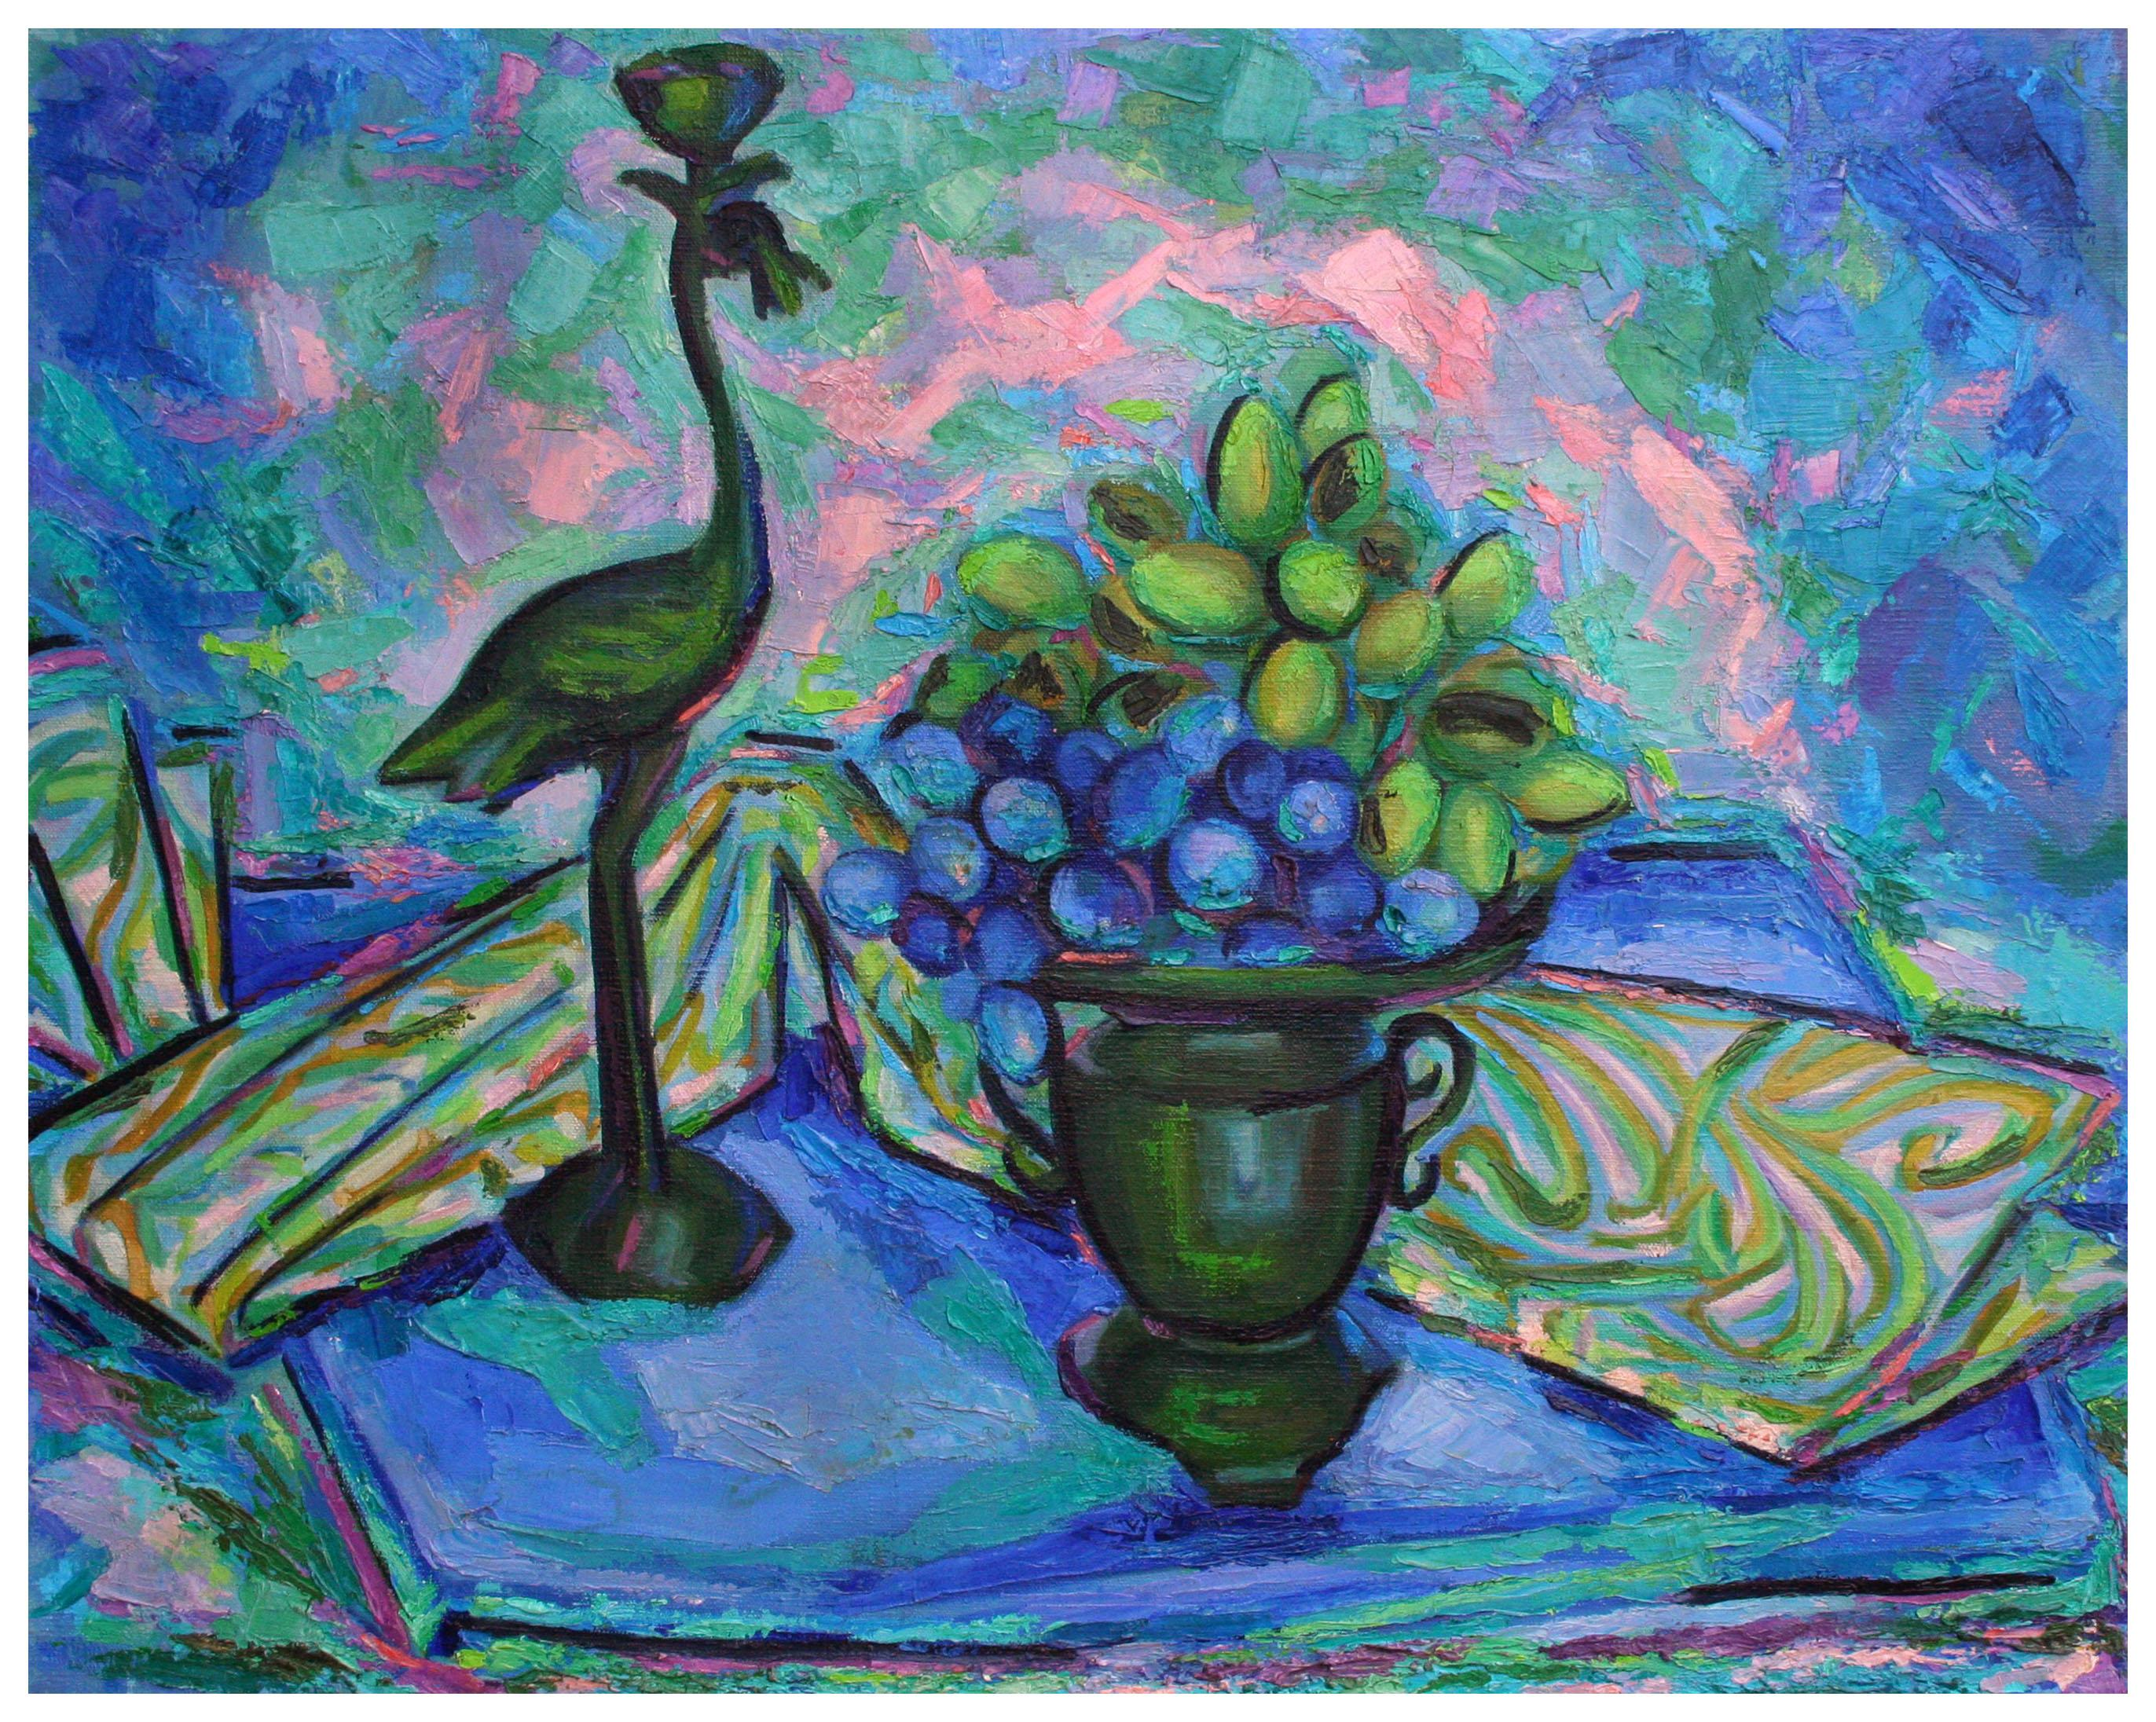 Fauvist Still Life Crane and Grapes by Virginia Sevier Rogers